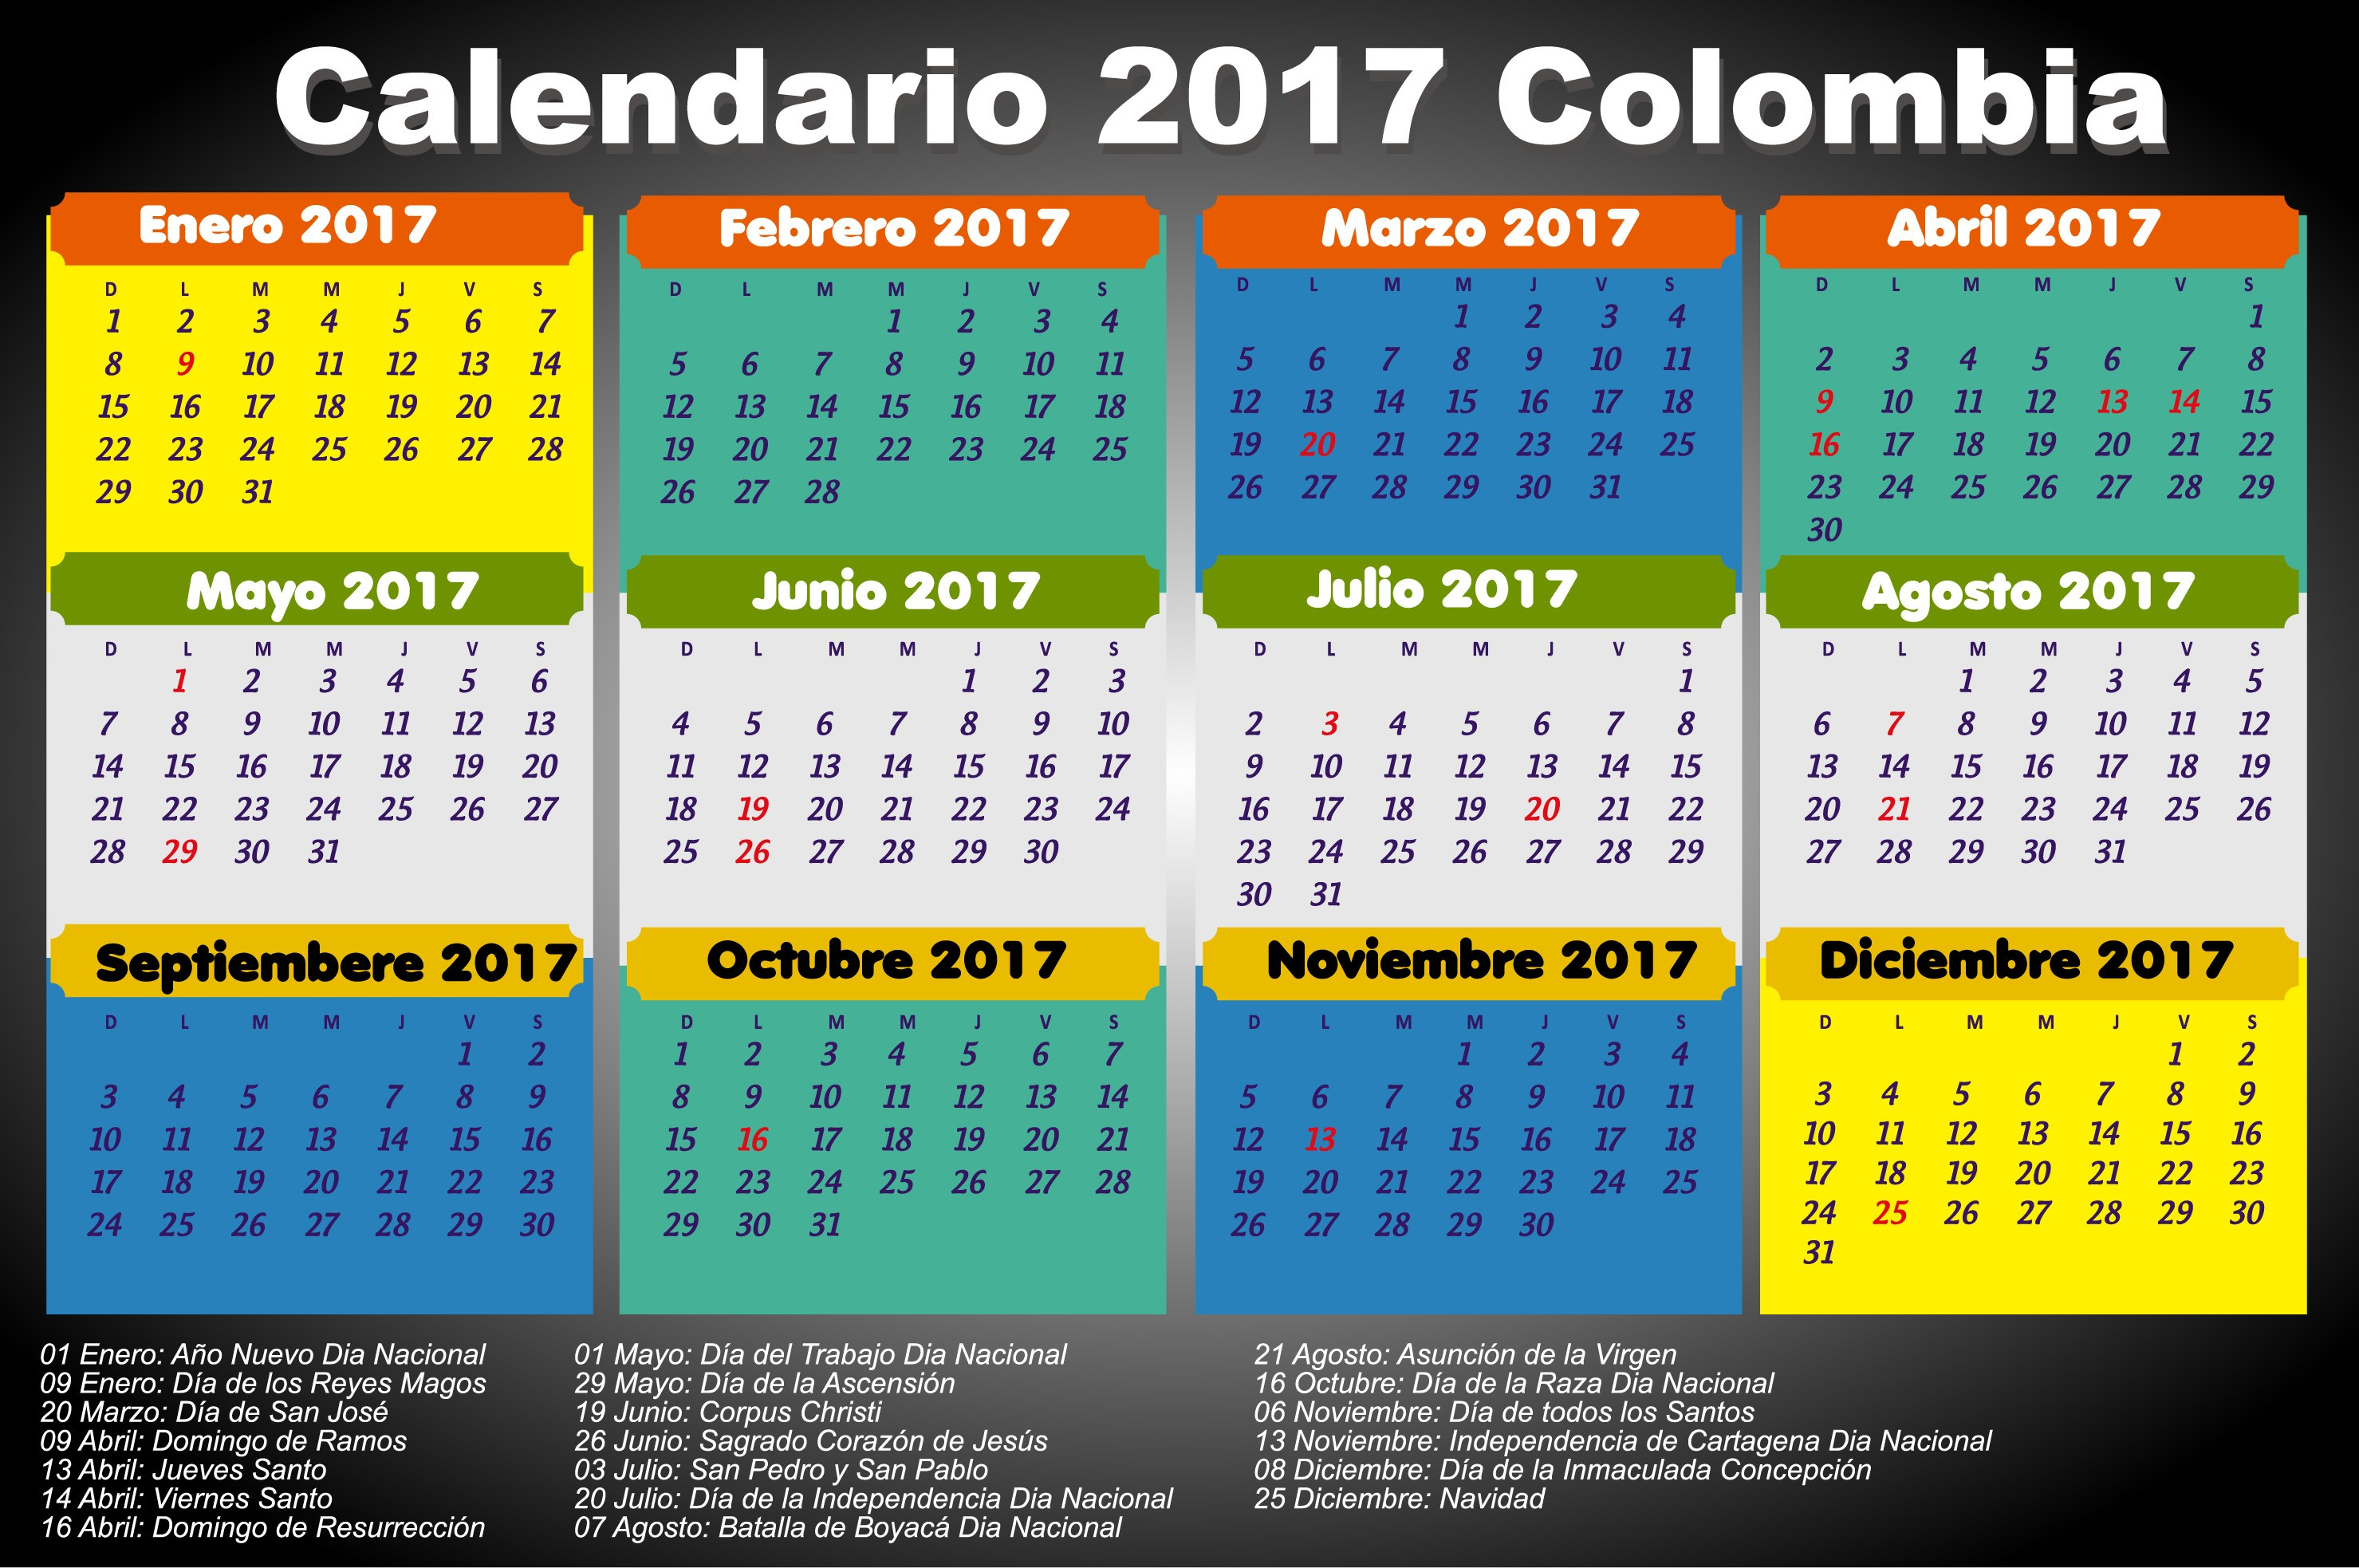 Calendario 2017 Chile Para Imprimir Pdf Recientes Calendario Feriados Junio Sab Abril Newspictures Of Calendario 2017 Chile Para Imprimir Pdf Más Recientemente Liberado Calendario Noviembre 2018 A Dibujar Pinterest